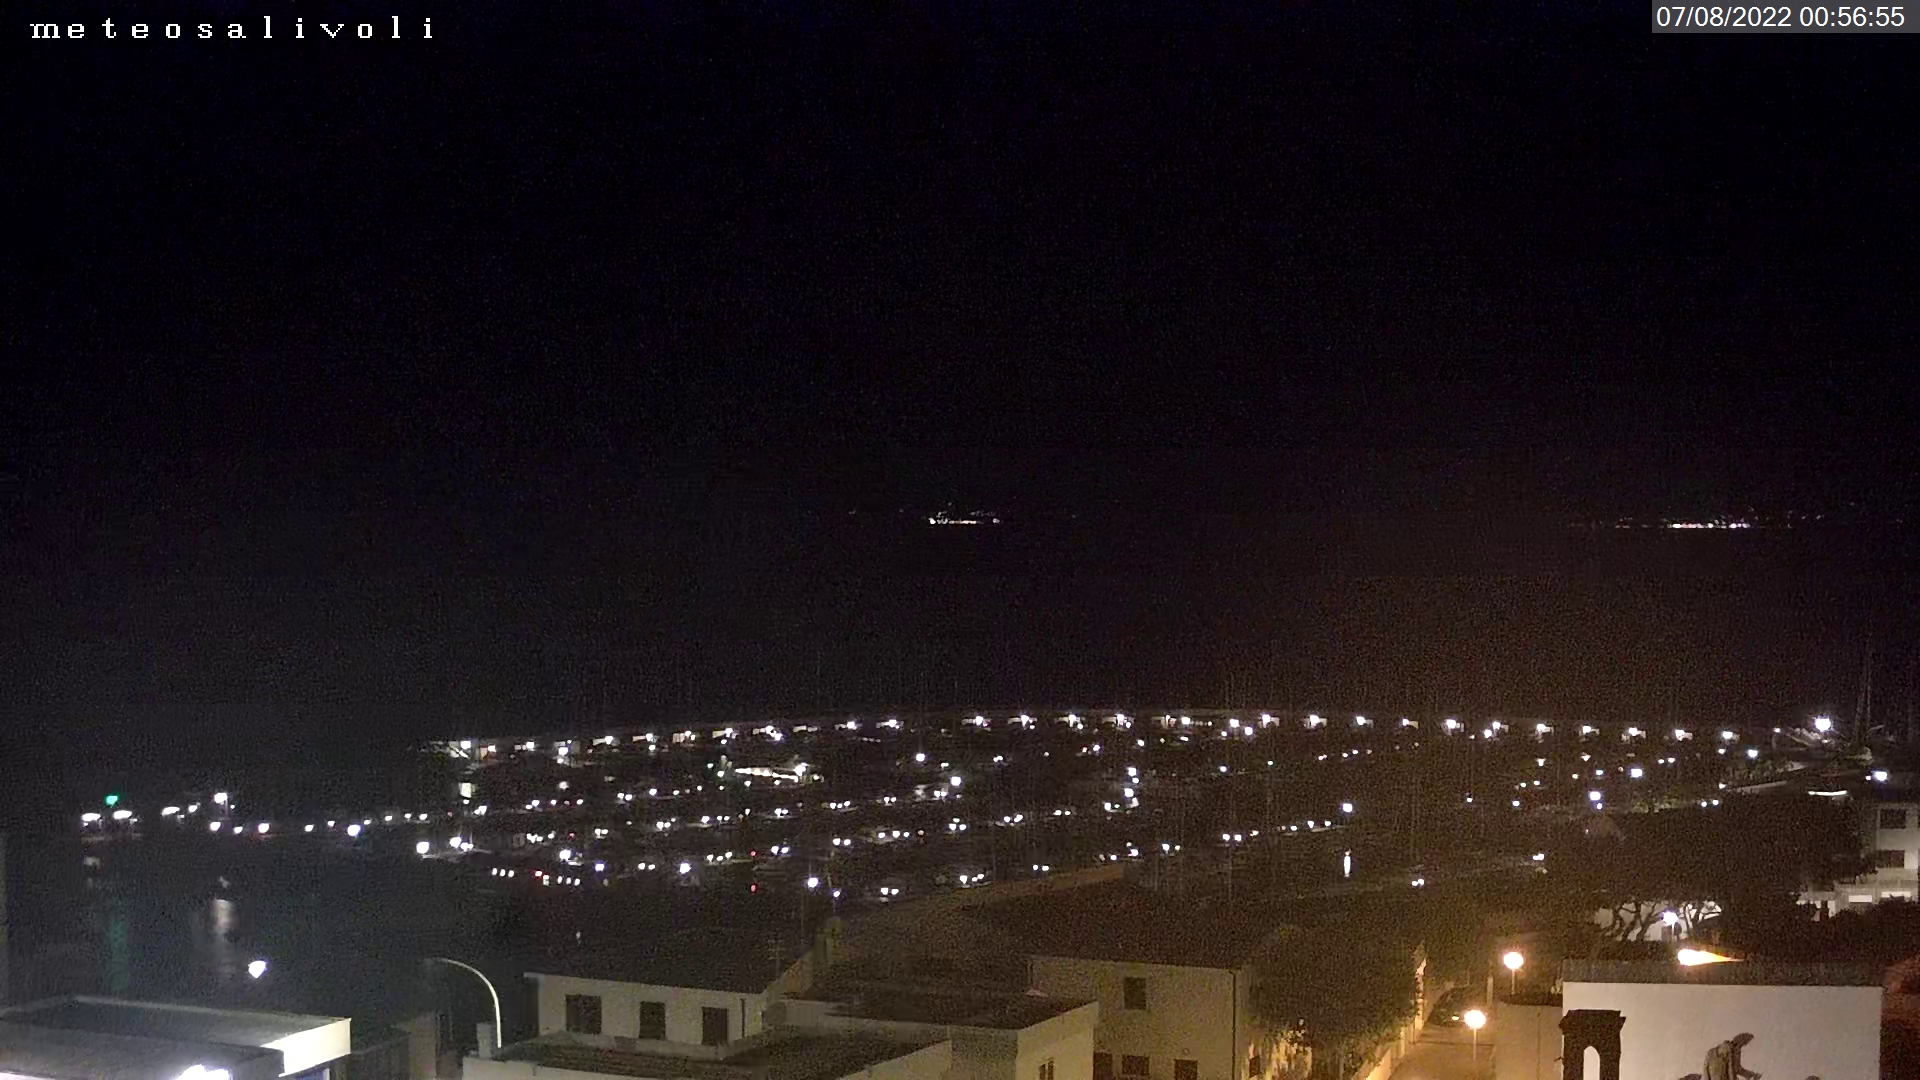 Webcam a Piombino (LI)